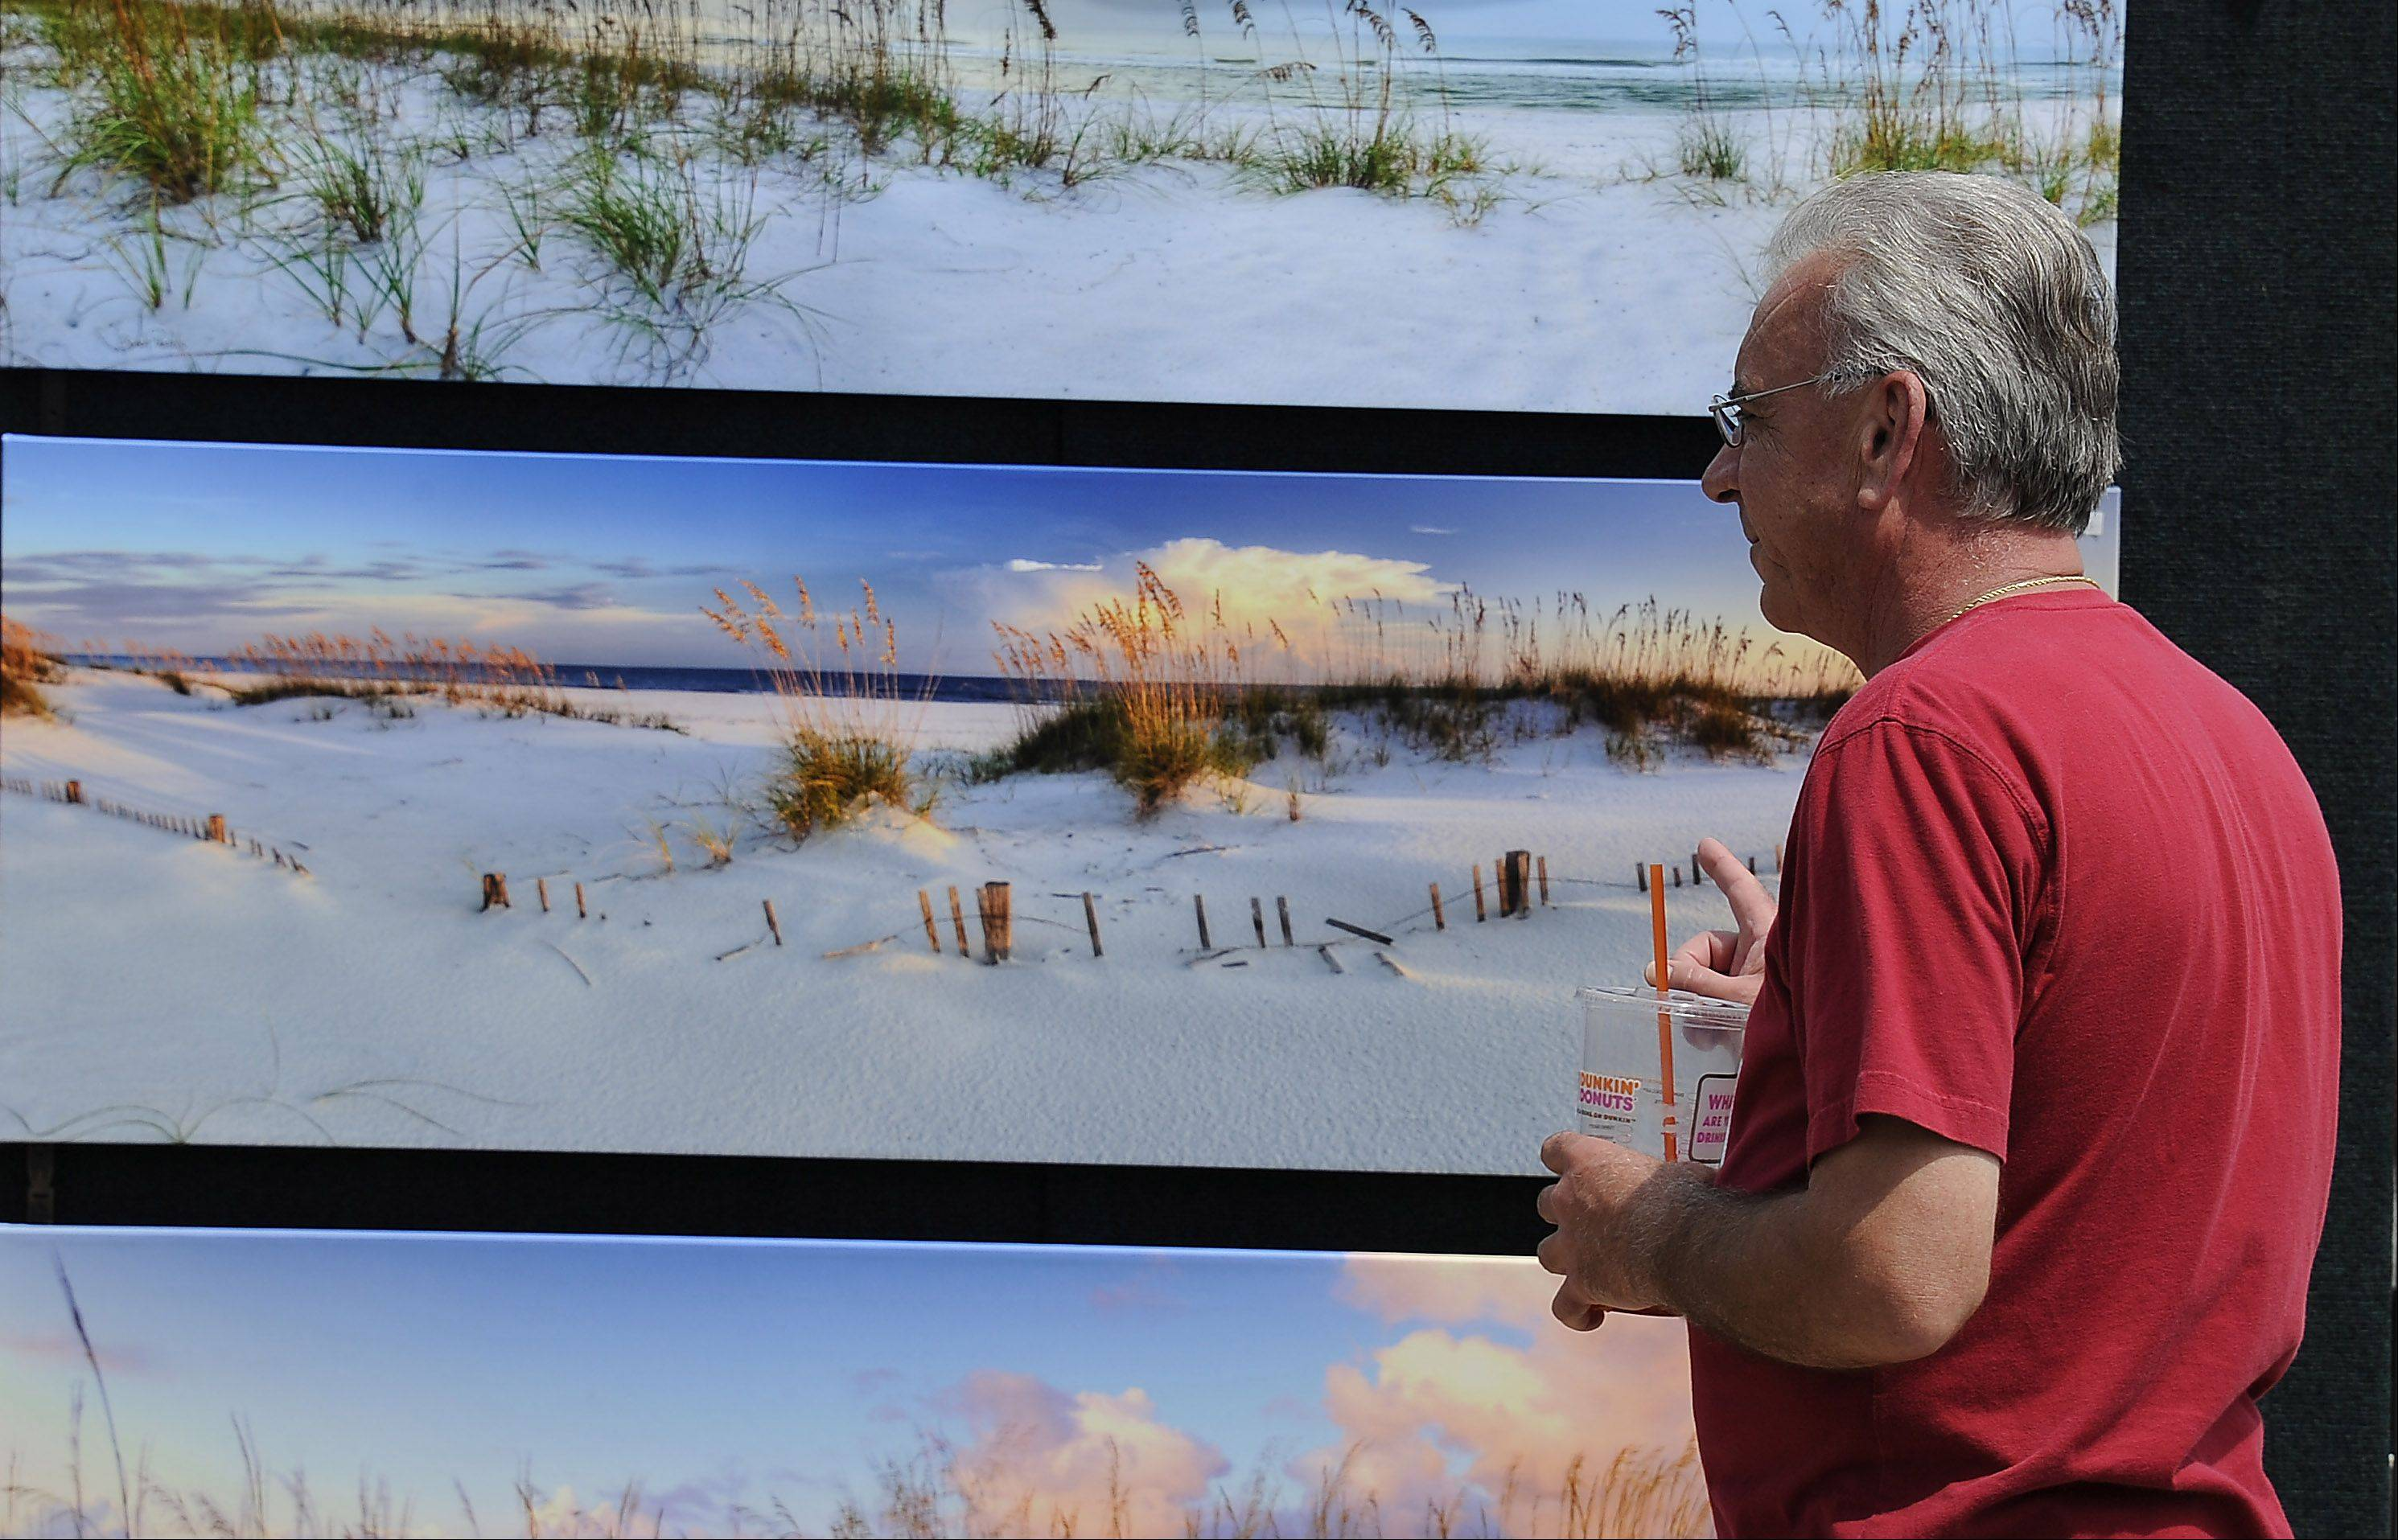 Joe Howard, of Buffalo Grove, gazes at the photography of Doug Cavanah at the 2012 festival.